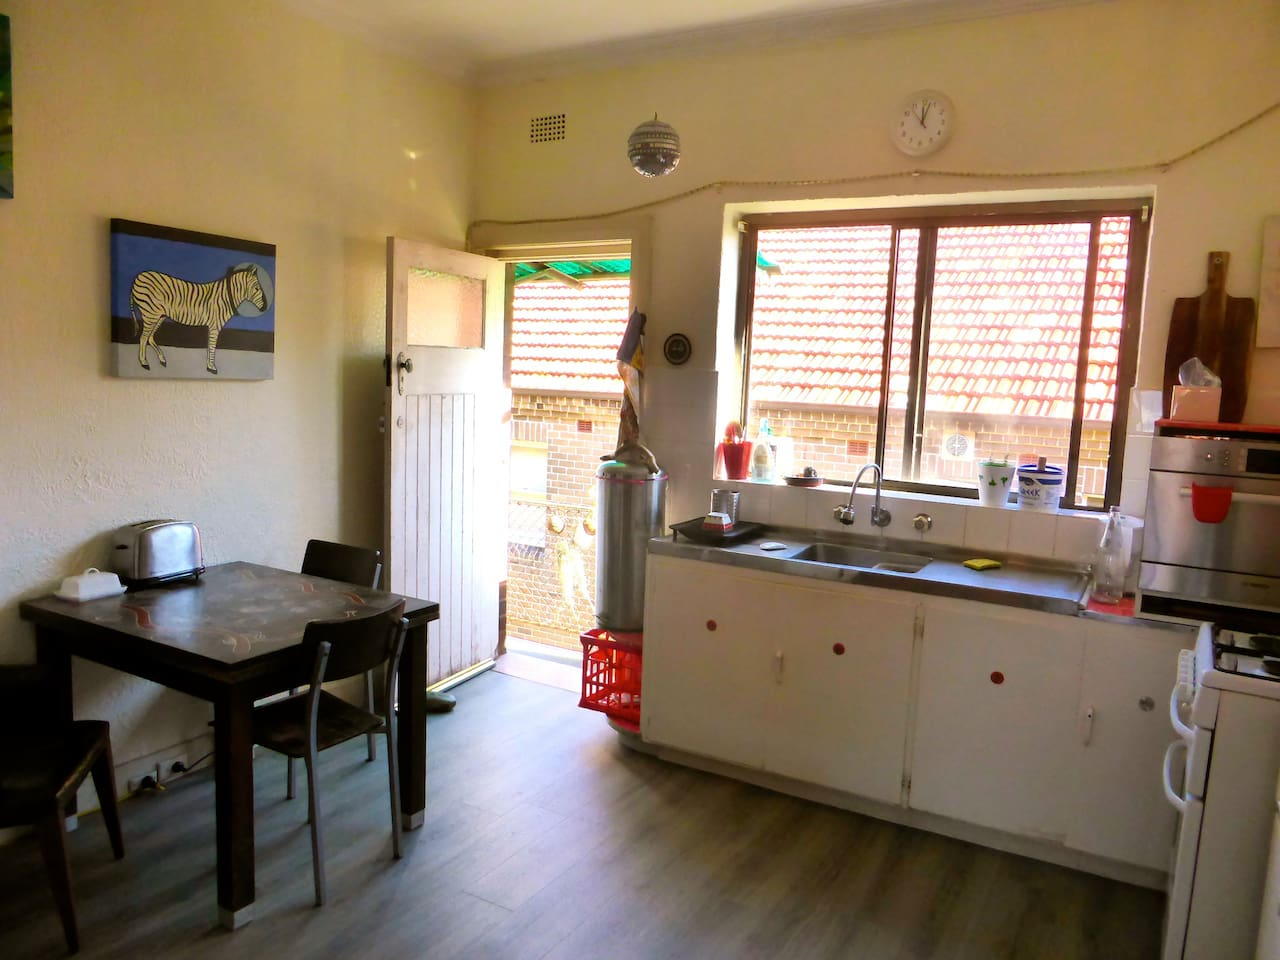 Large kitchen - fully equipped with KitchenAid,  Microwave, Dishwasher, large fridge, oven. Table can expand to seat 8.